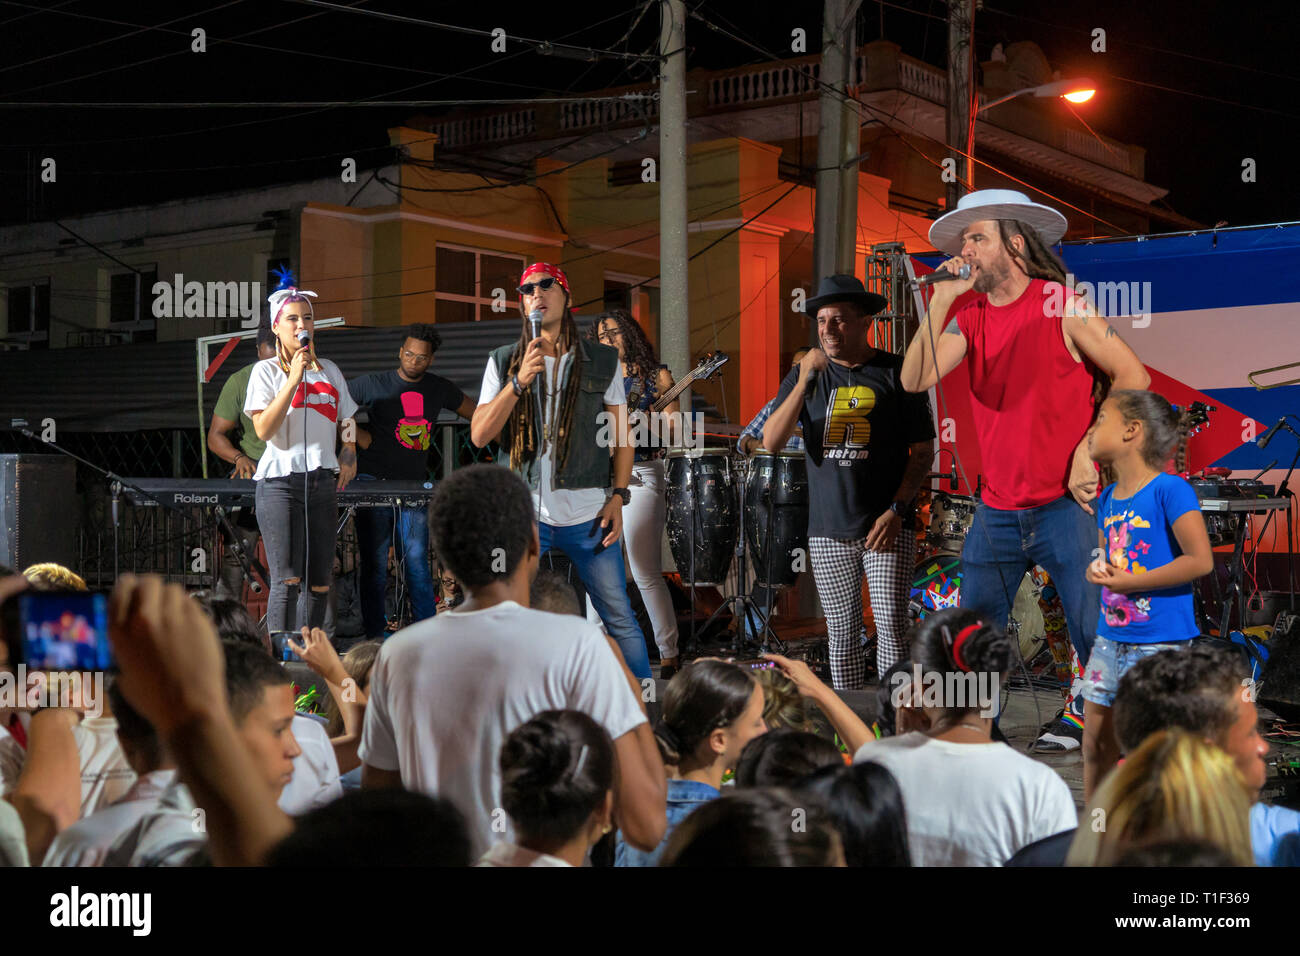 Santa Clara, Cuba - January 27 2019: Night performance of the qva libre musical group seen from the public. Young people watching the performance of t - Stock Image